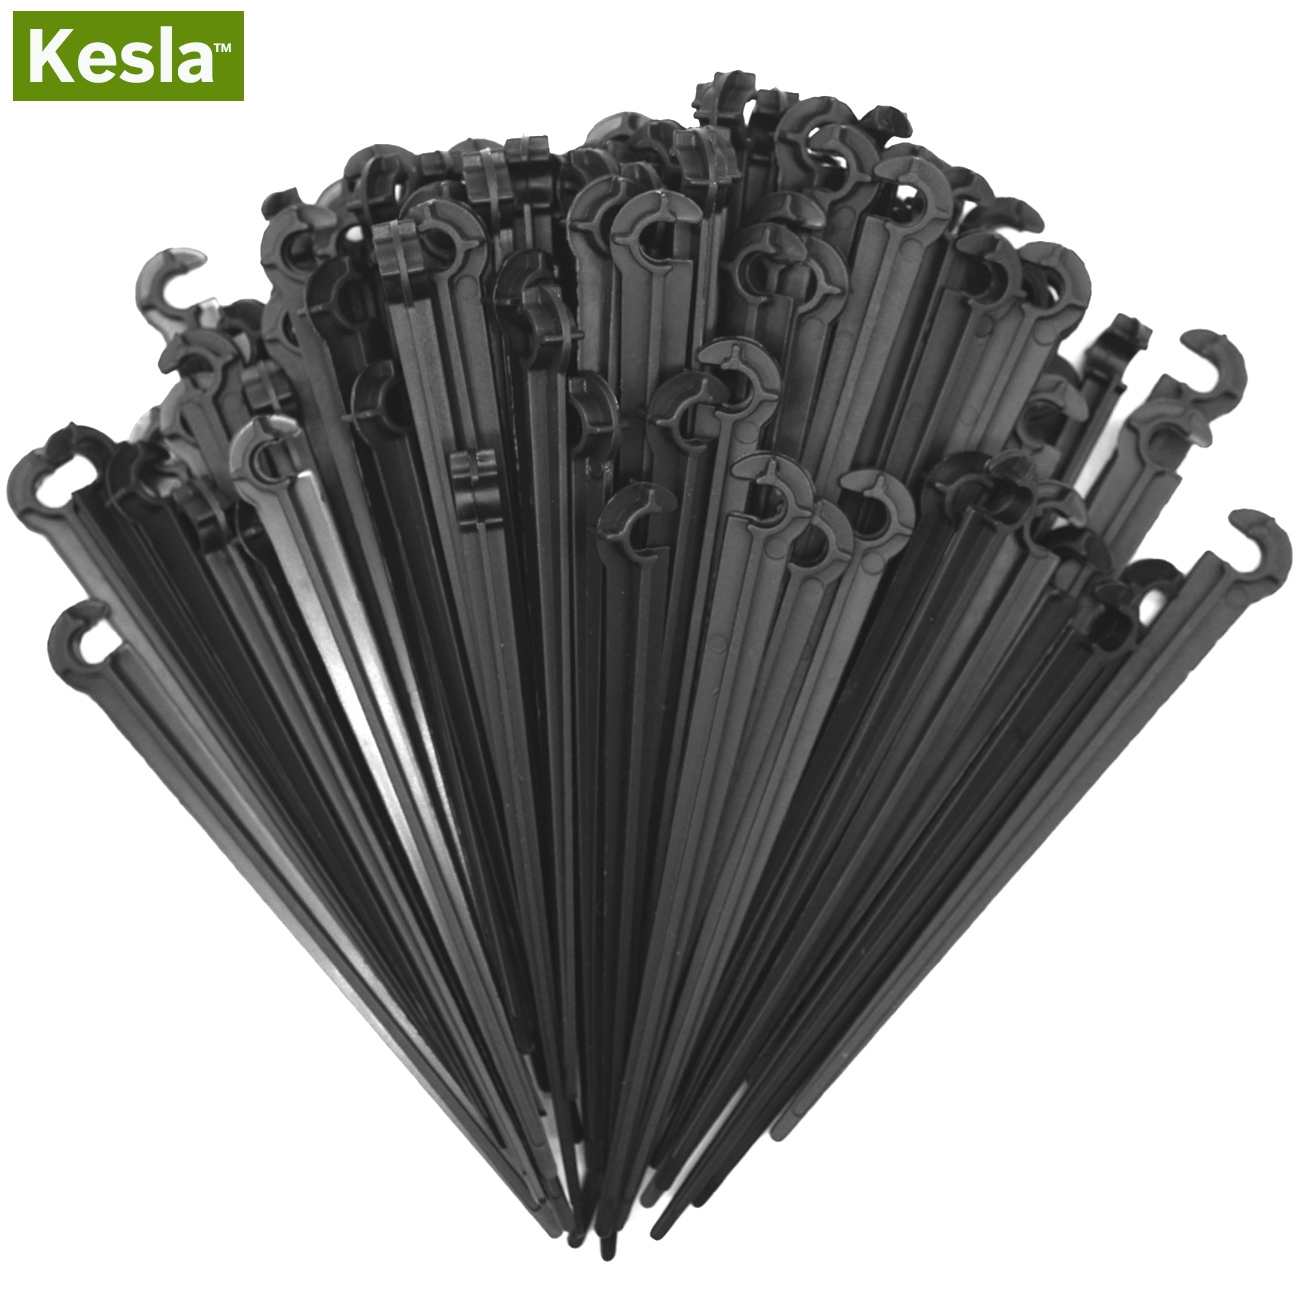 50pcs Plastic Hook Fixed Stem Stakes Used for 4//7 mm Drip Irrigation Tubing Pipe